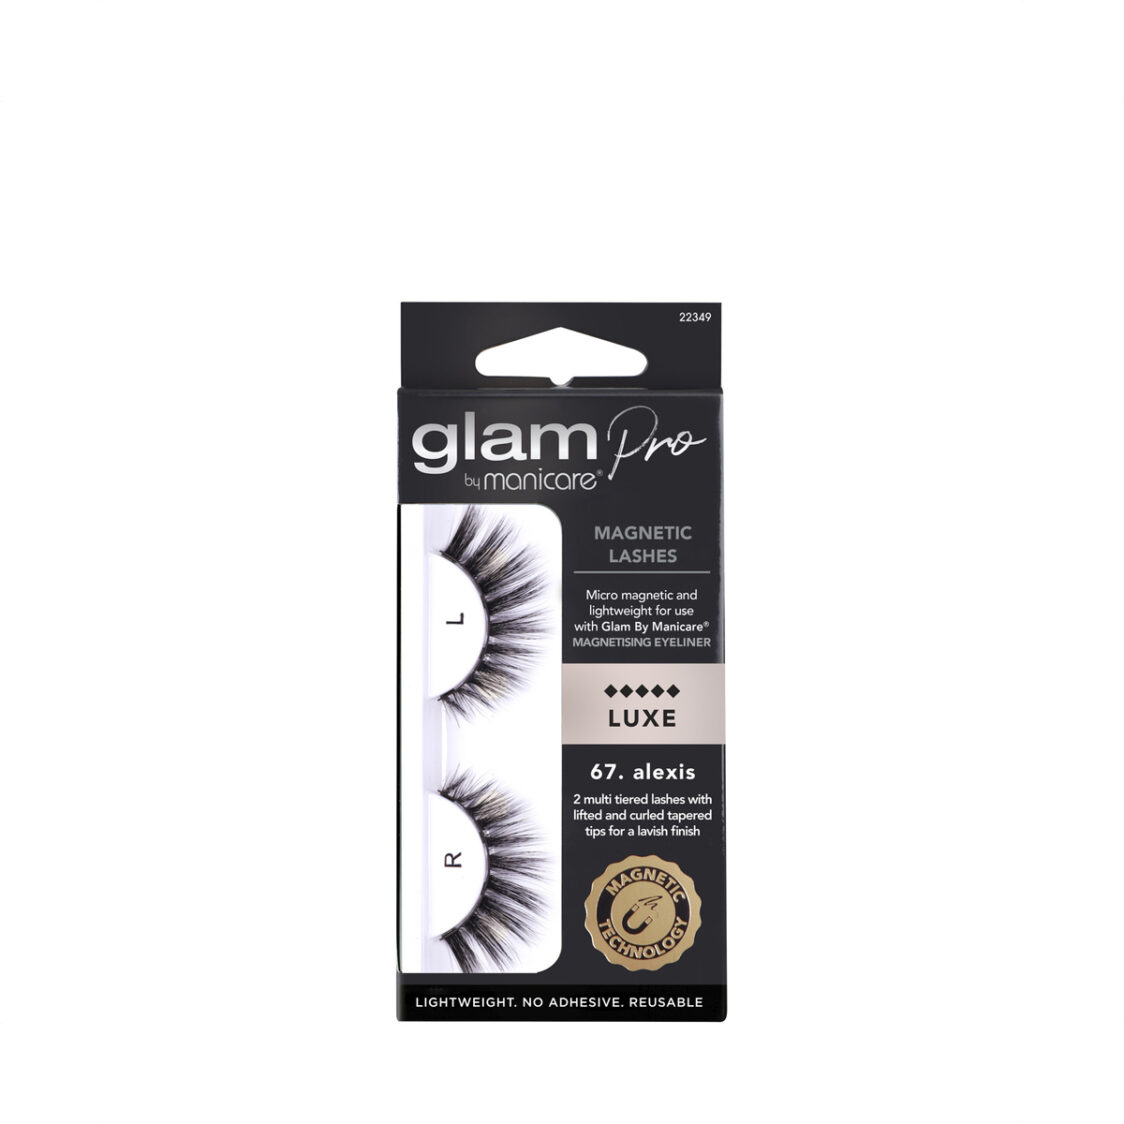 Manicare Glam Pro 67 Alexis Magnetic Lashes Luxe